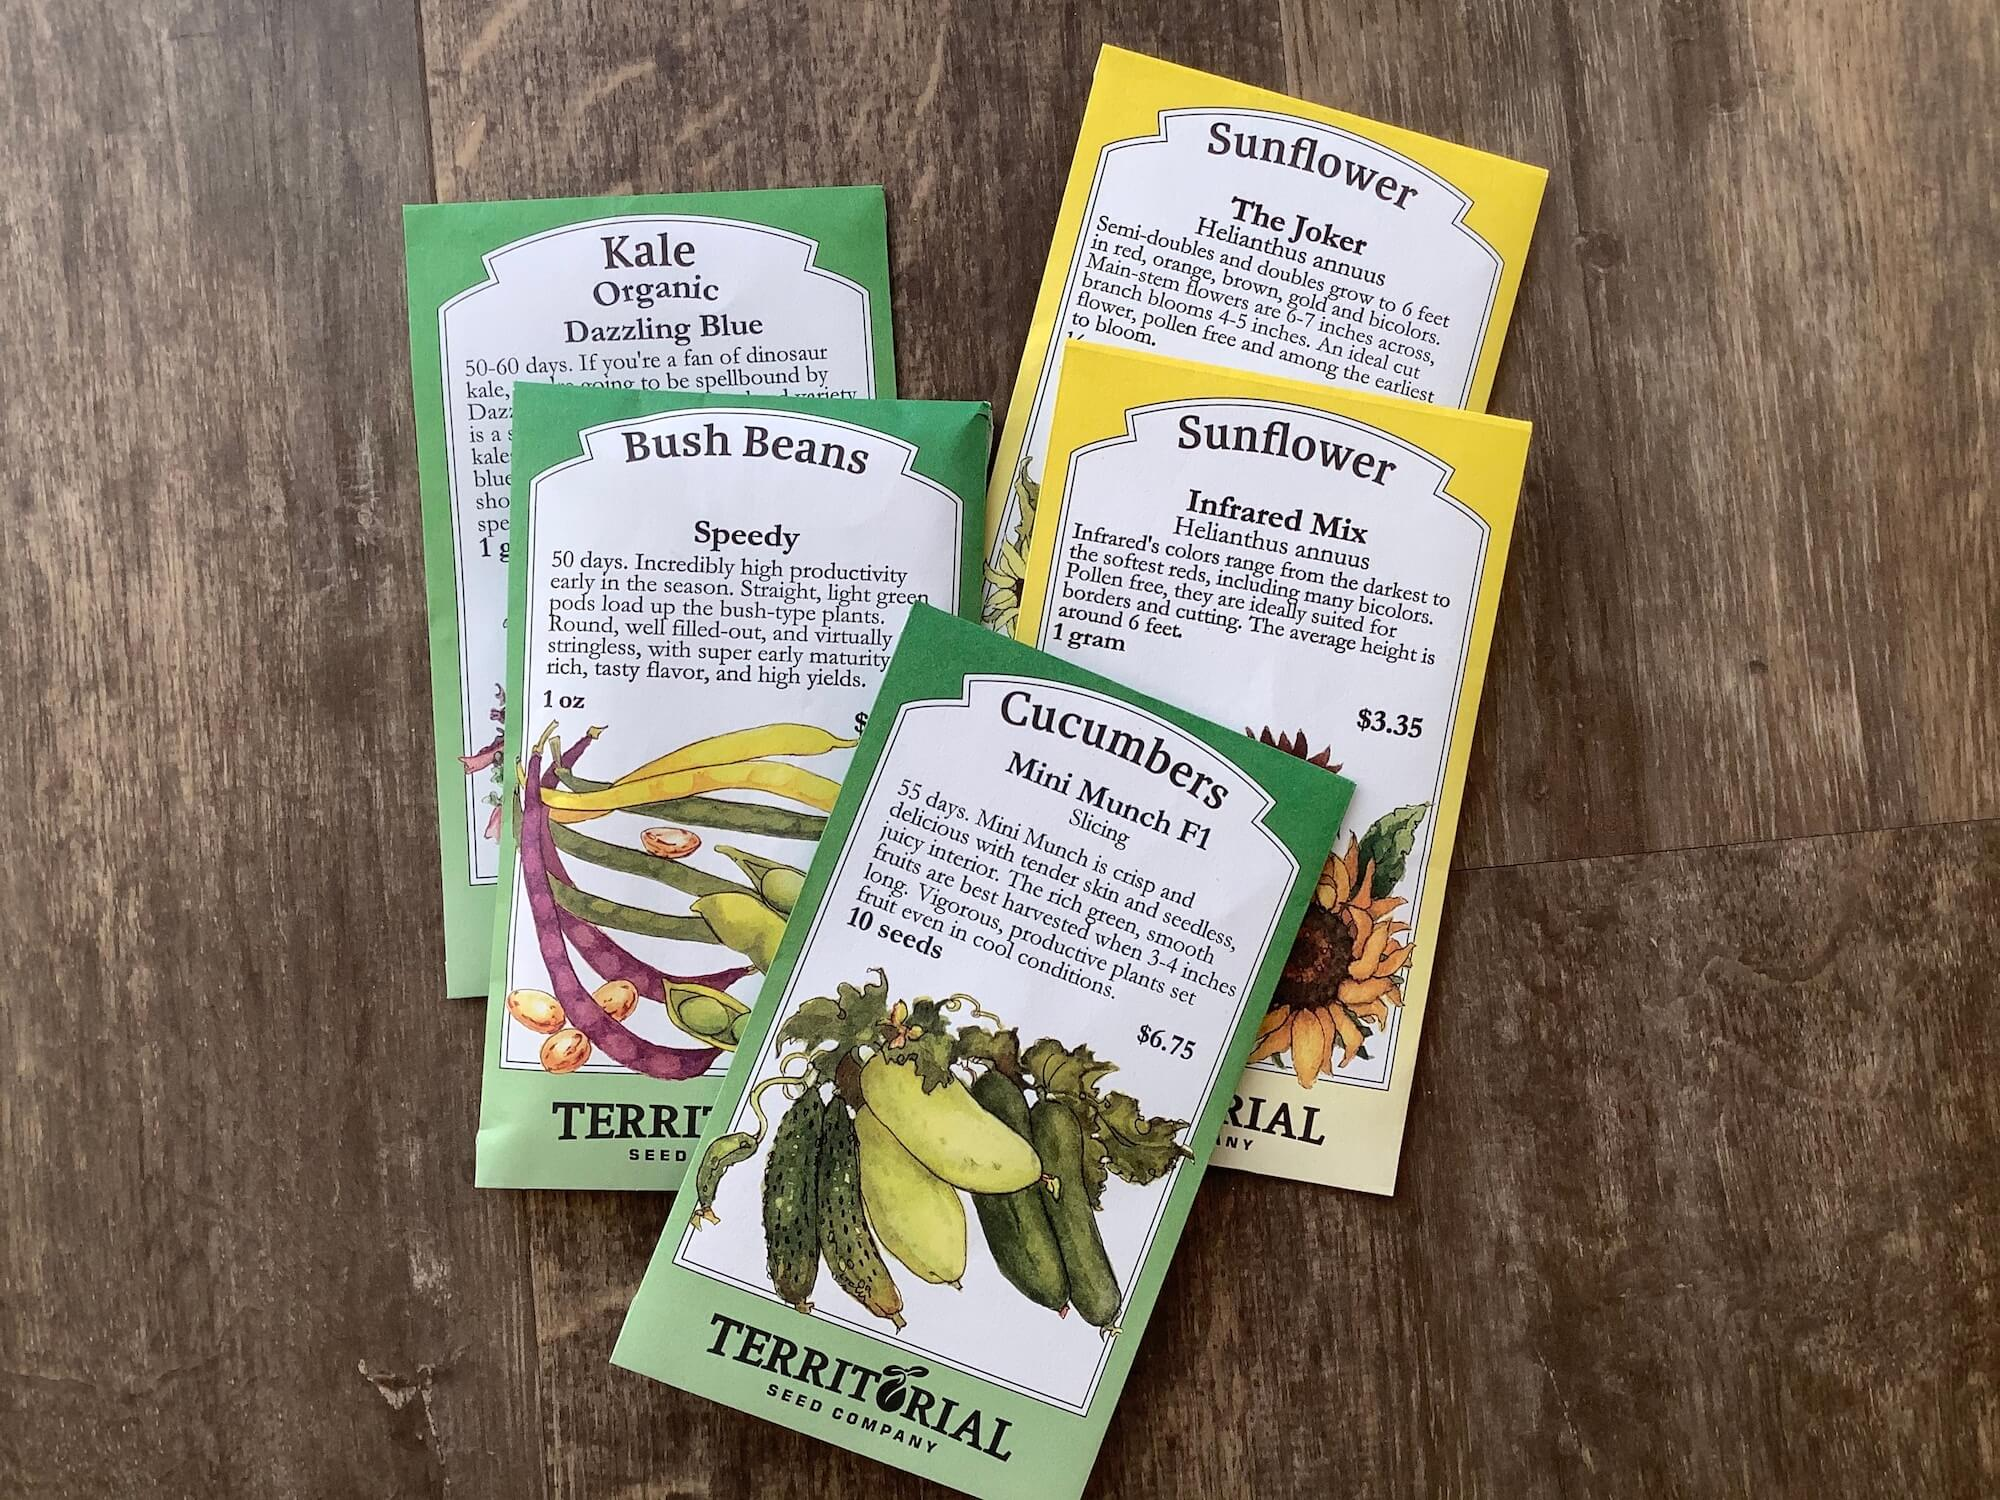 A photo of five seed packets, mini munch cucumbers, speedy bush beans, the joker sunflowers, infrared mix sunflowers and dazzling blue kale